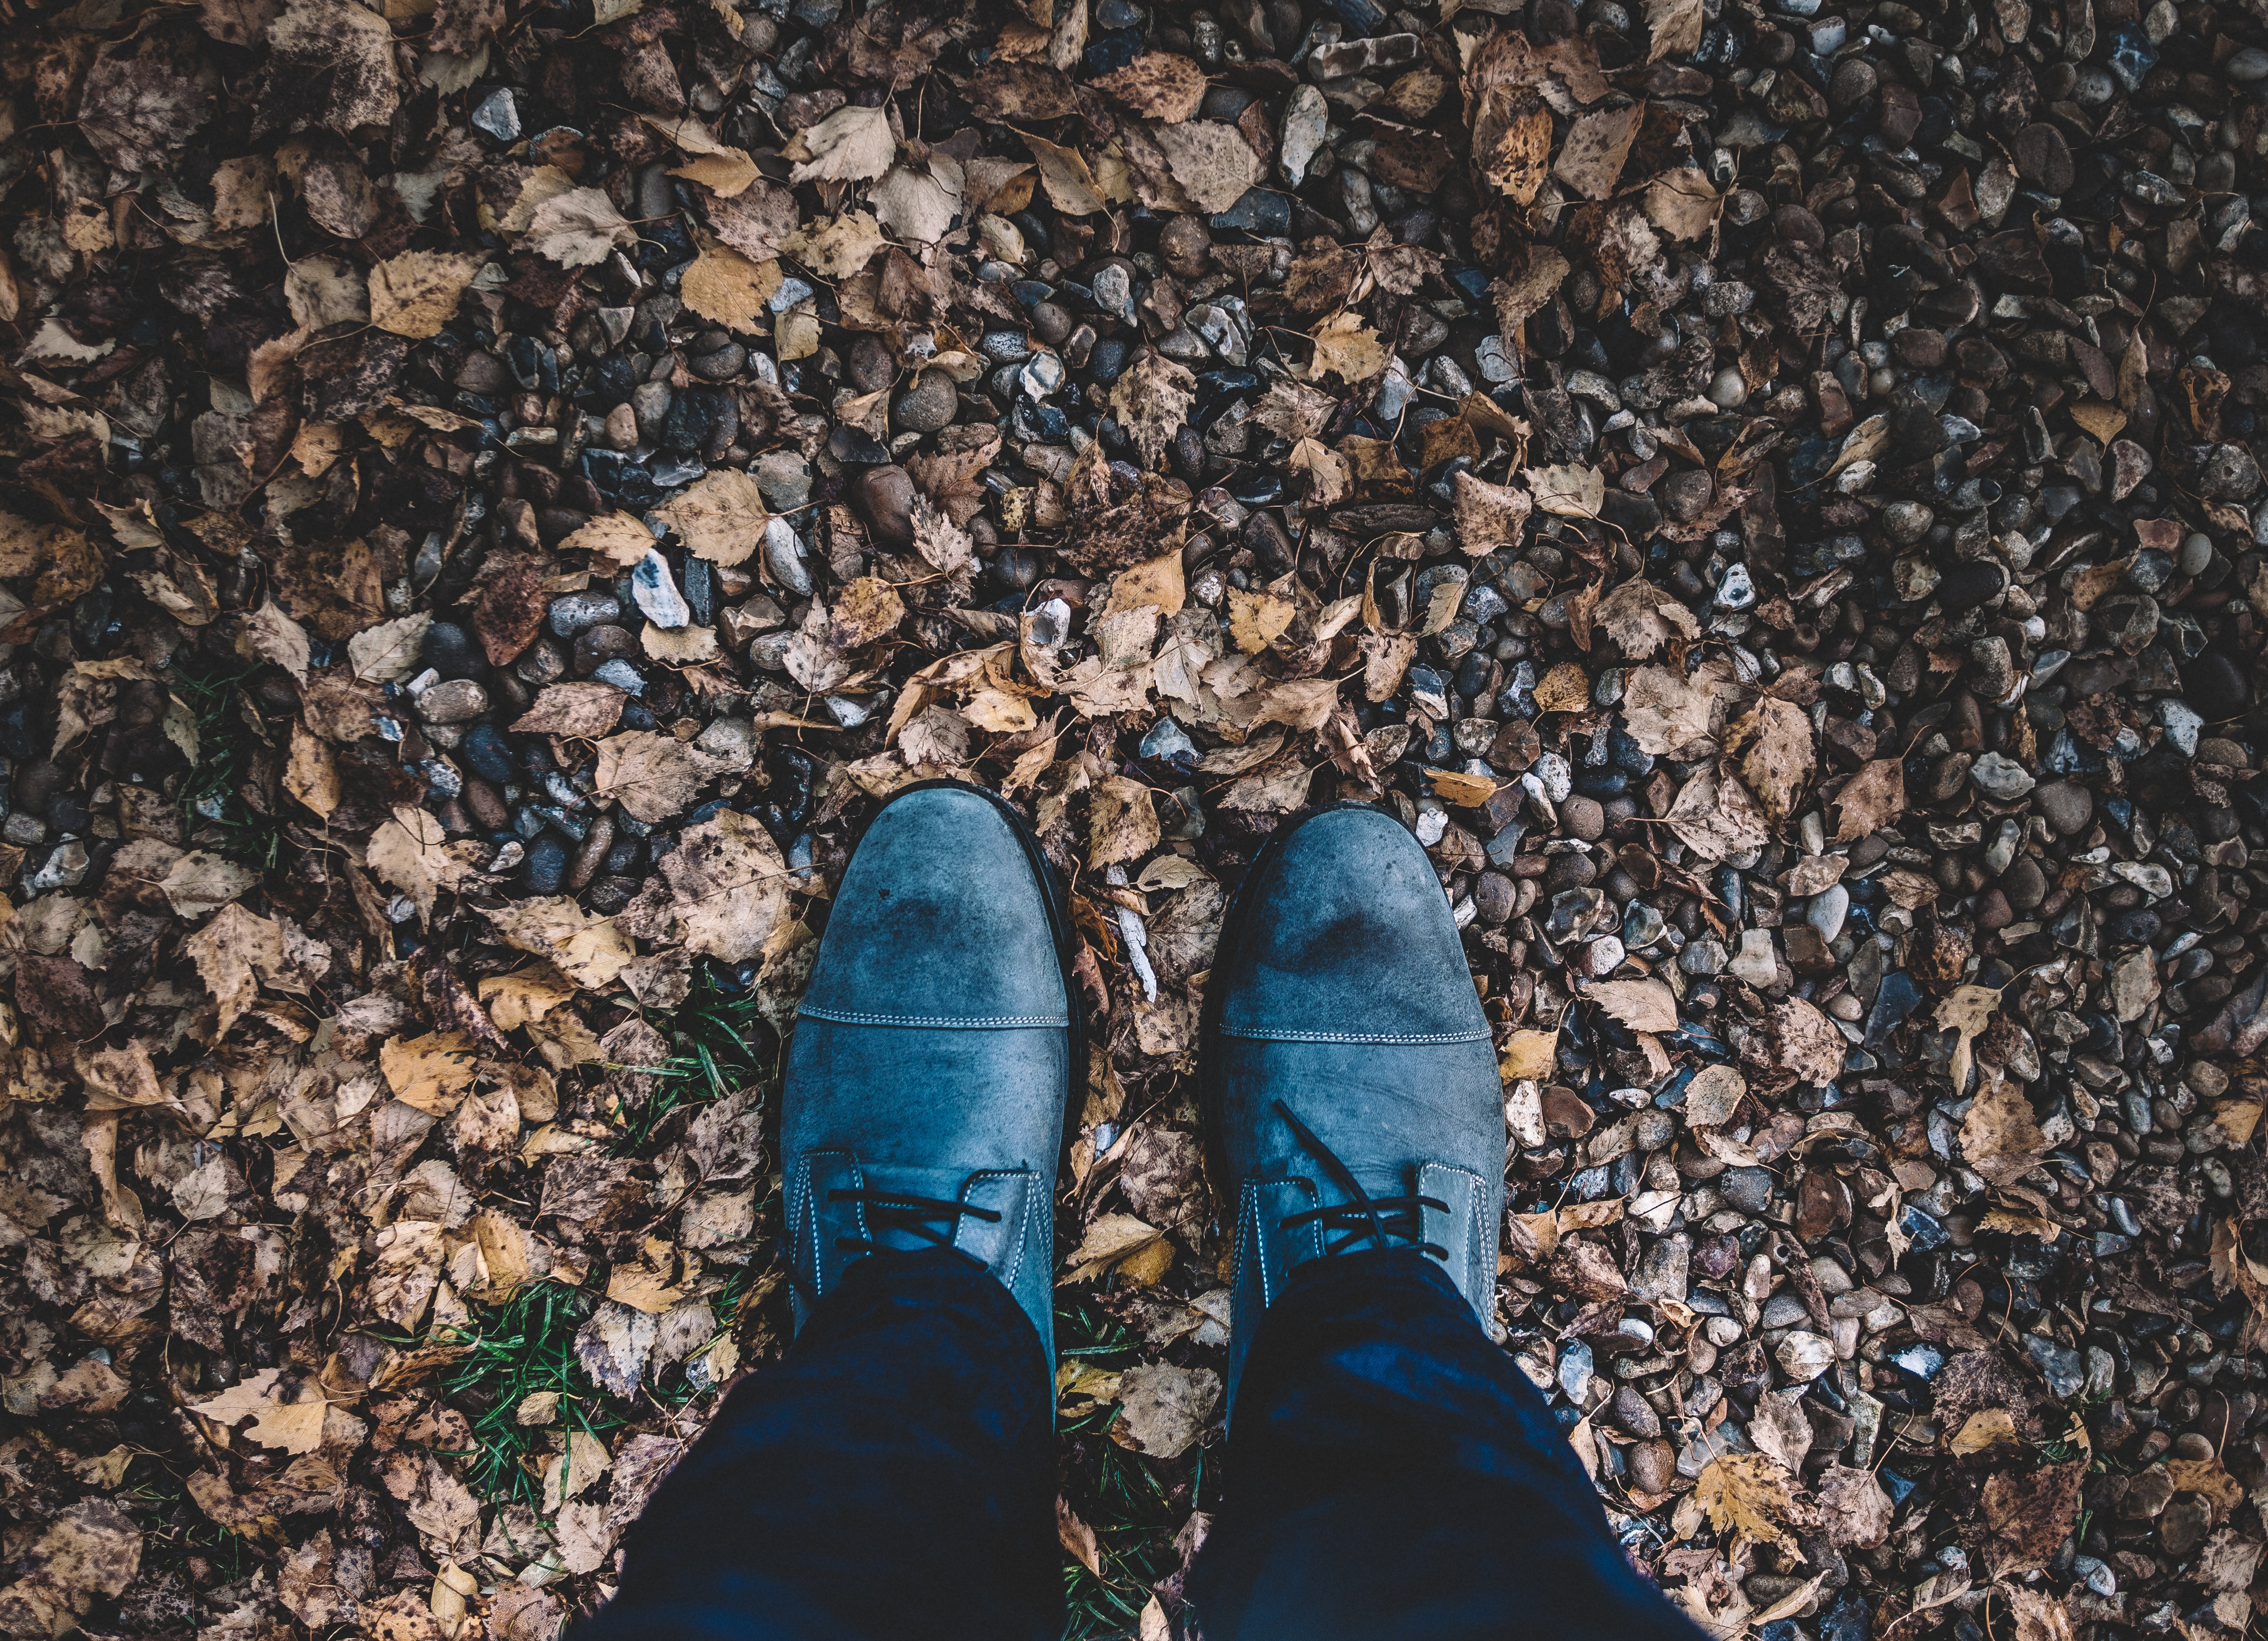 Looking down at a pair of blue boots in a pile of leaves on the floor in the autumn.